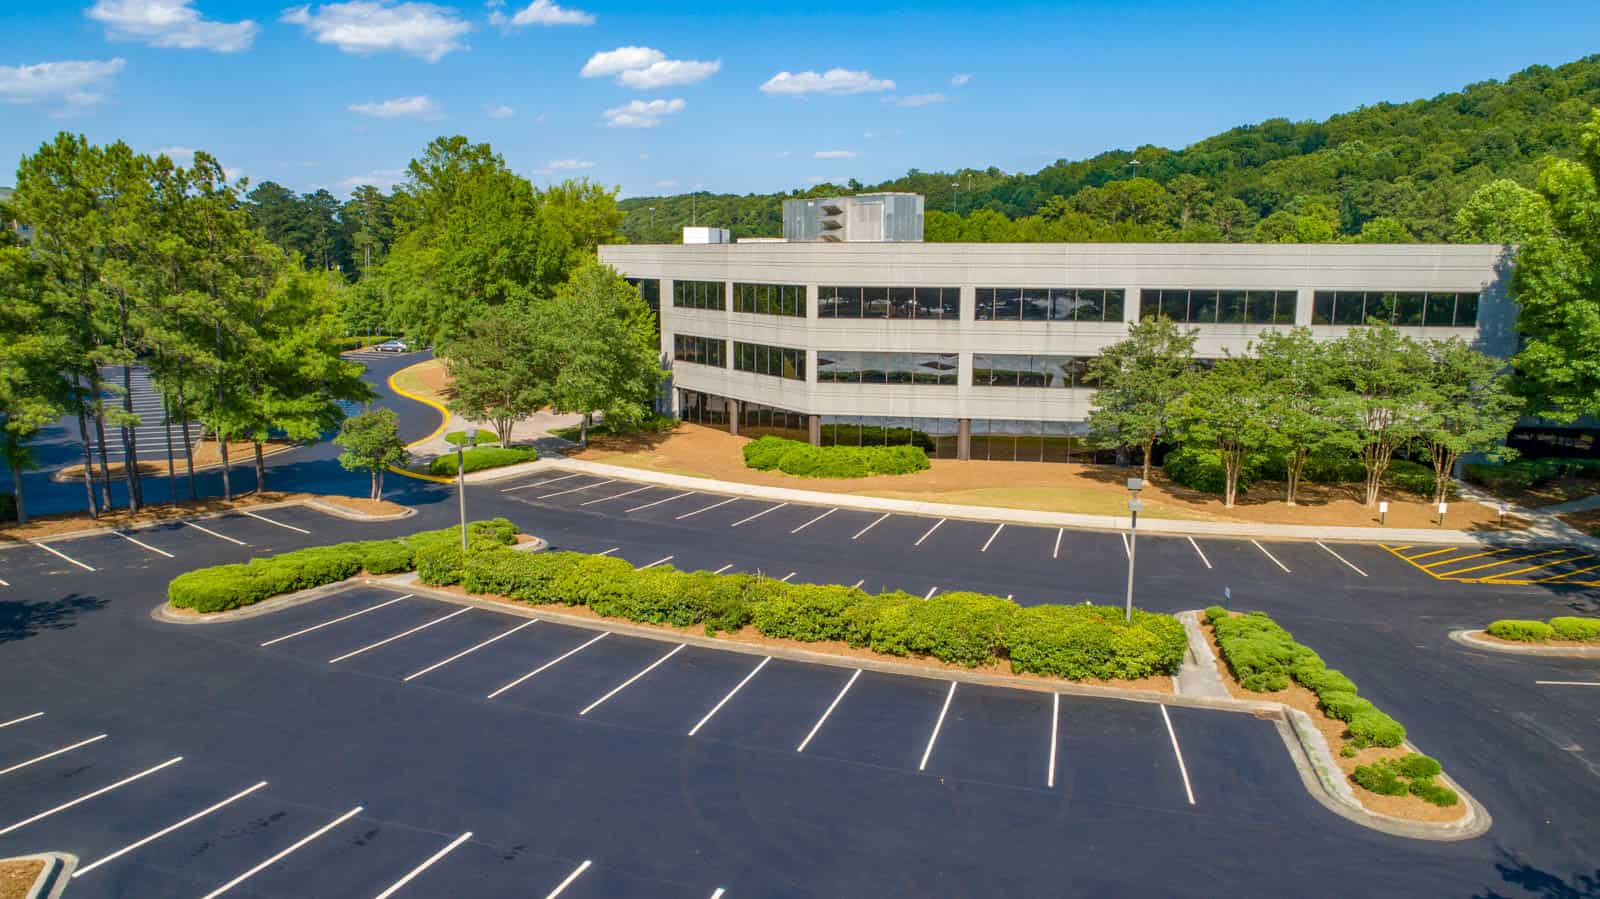 aerial drone photo of commercial real estate property in Gainesville, GA with full building and parking lot in view